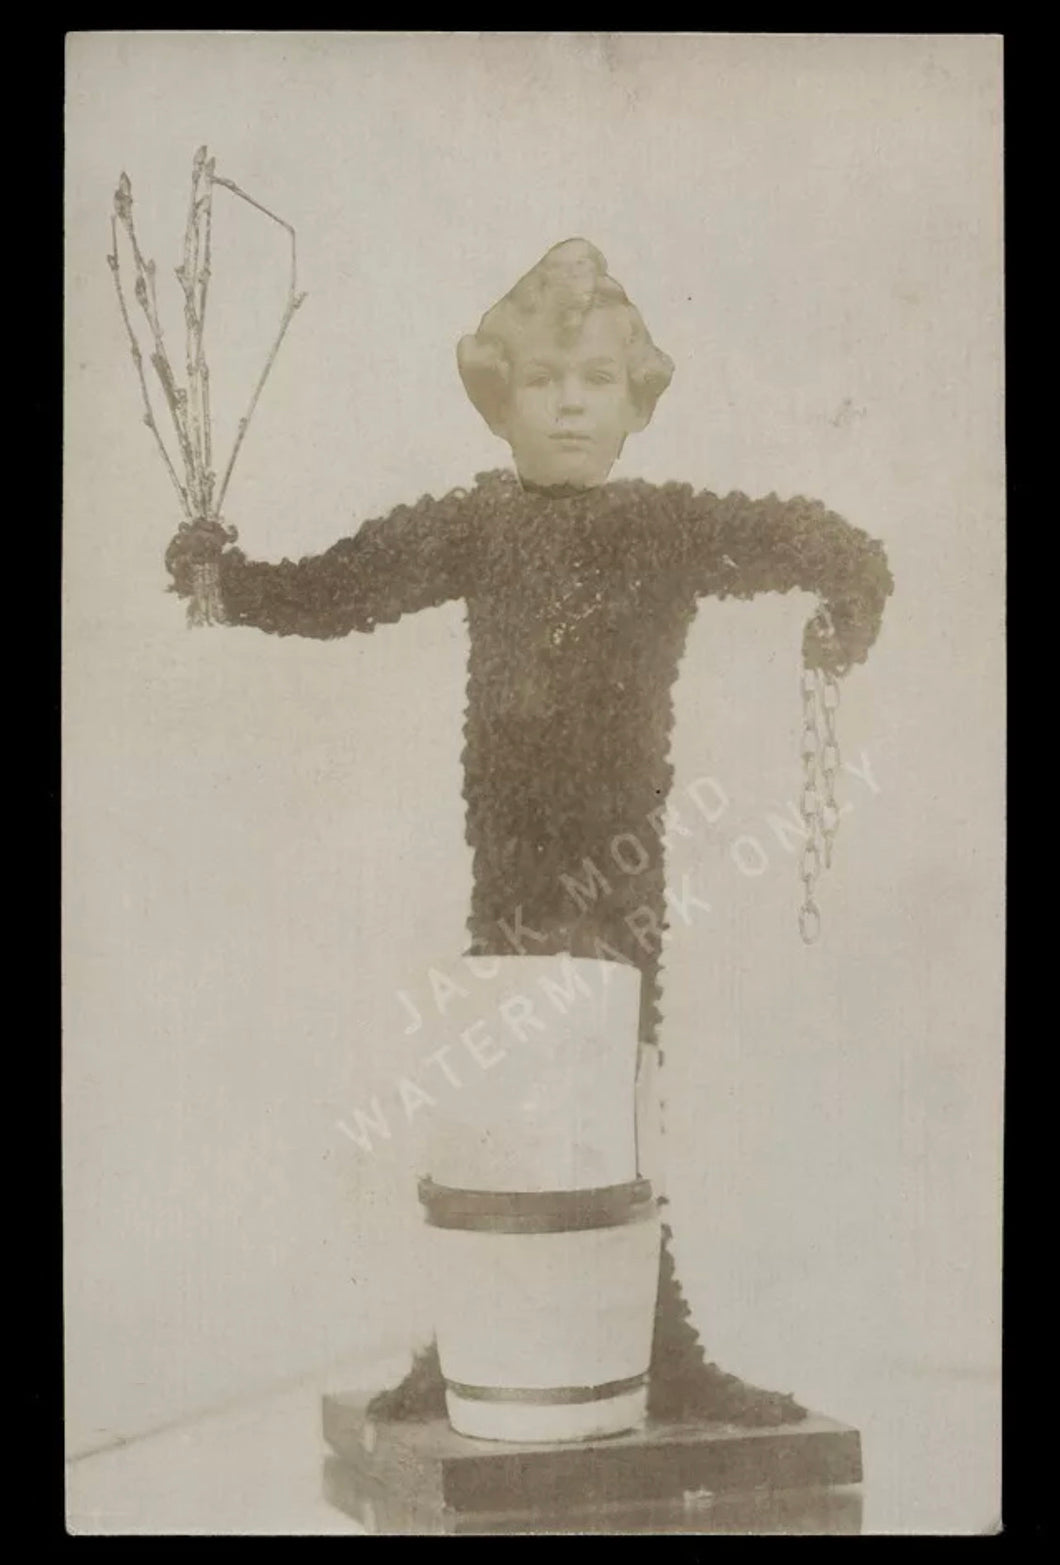 Weird / Unusual Composite Monkey Boy Photo Antique Oddities / Sideshow Gag?